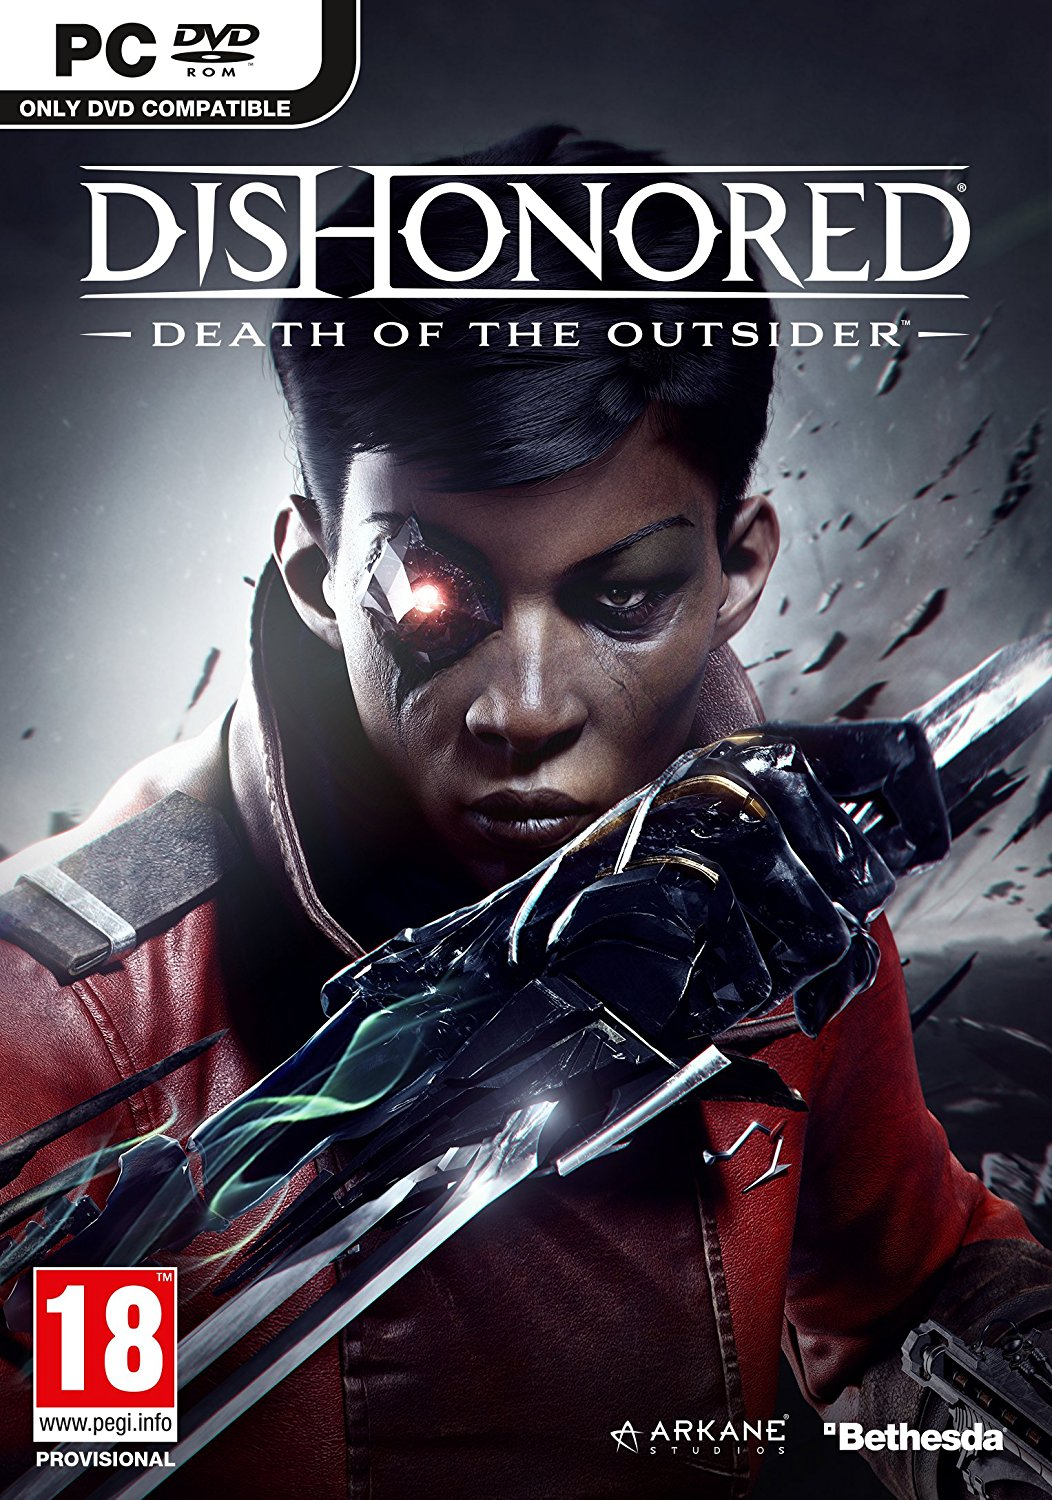 http://img5.downloadha.com/hosein/Game/September%202017/15/Dishonored-Death-of-the-Outsider-pc-cover-large.jpg